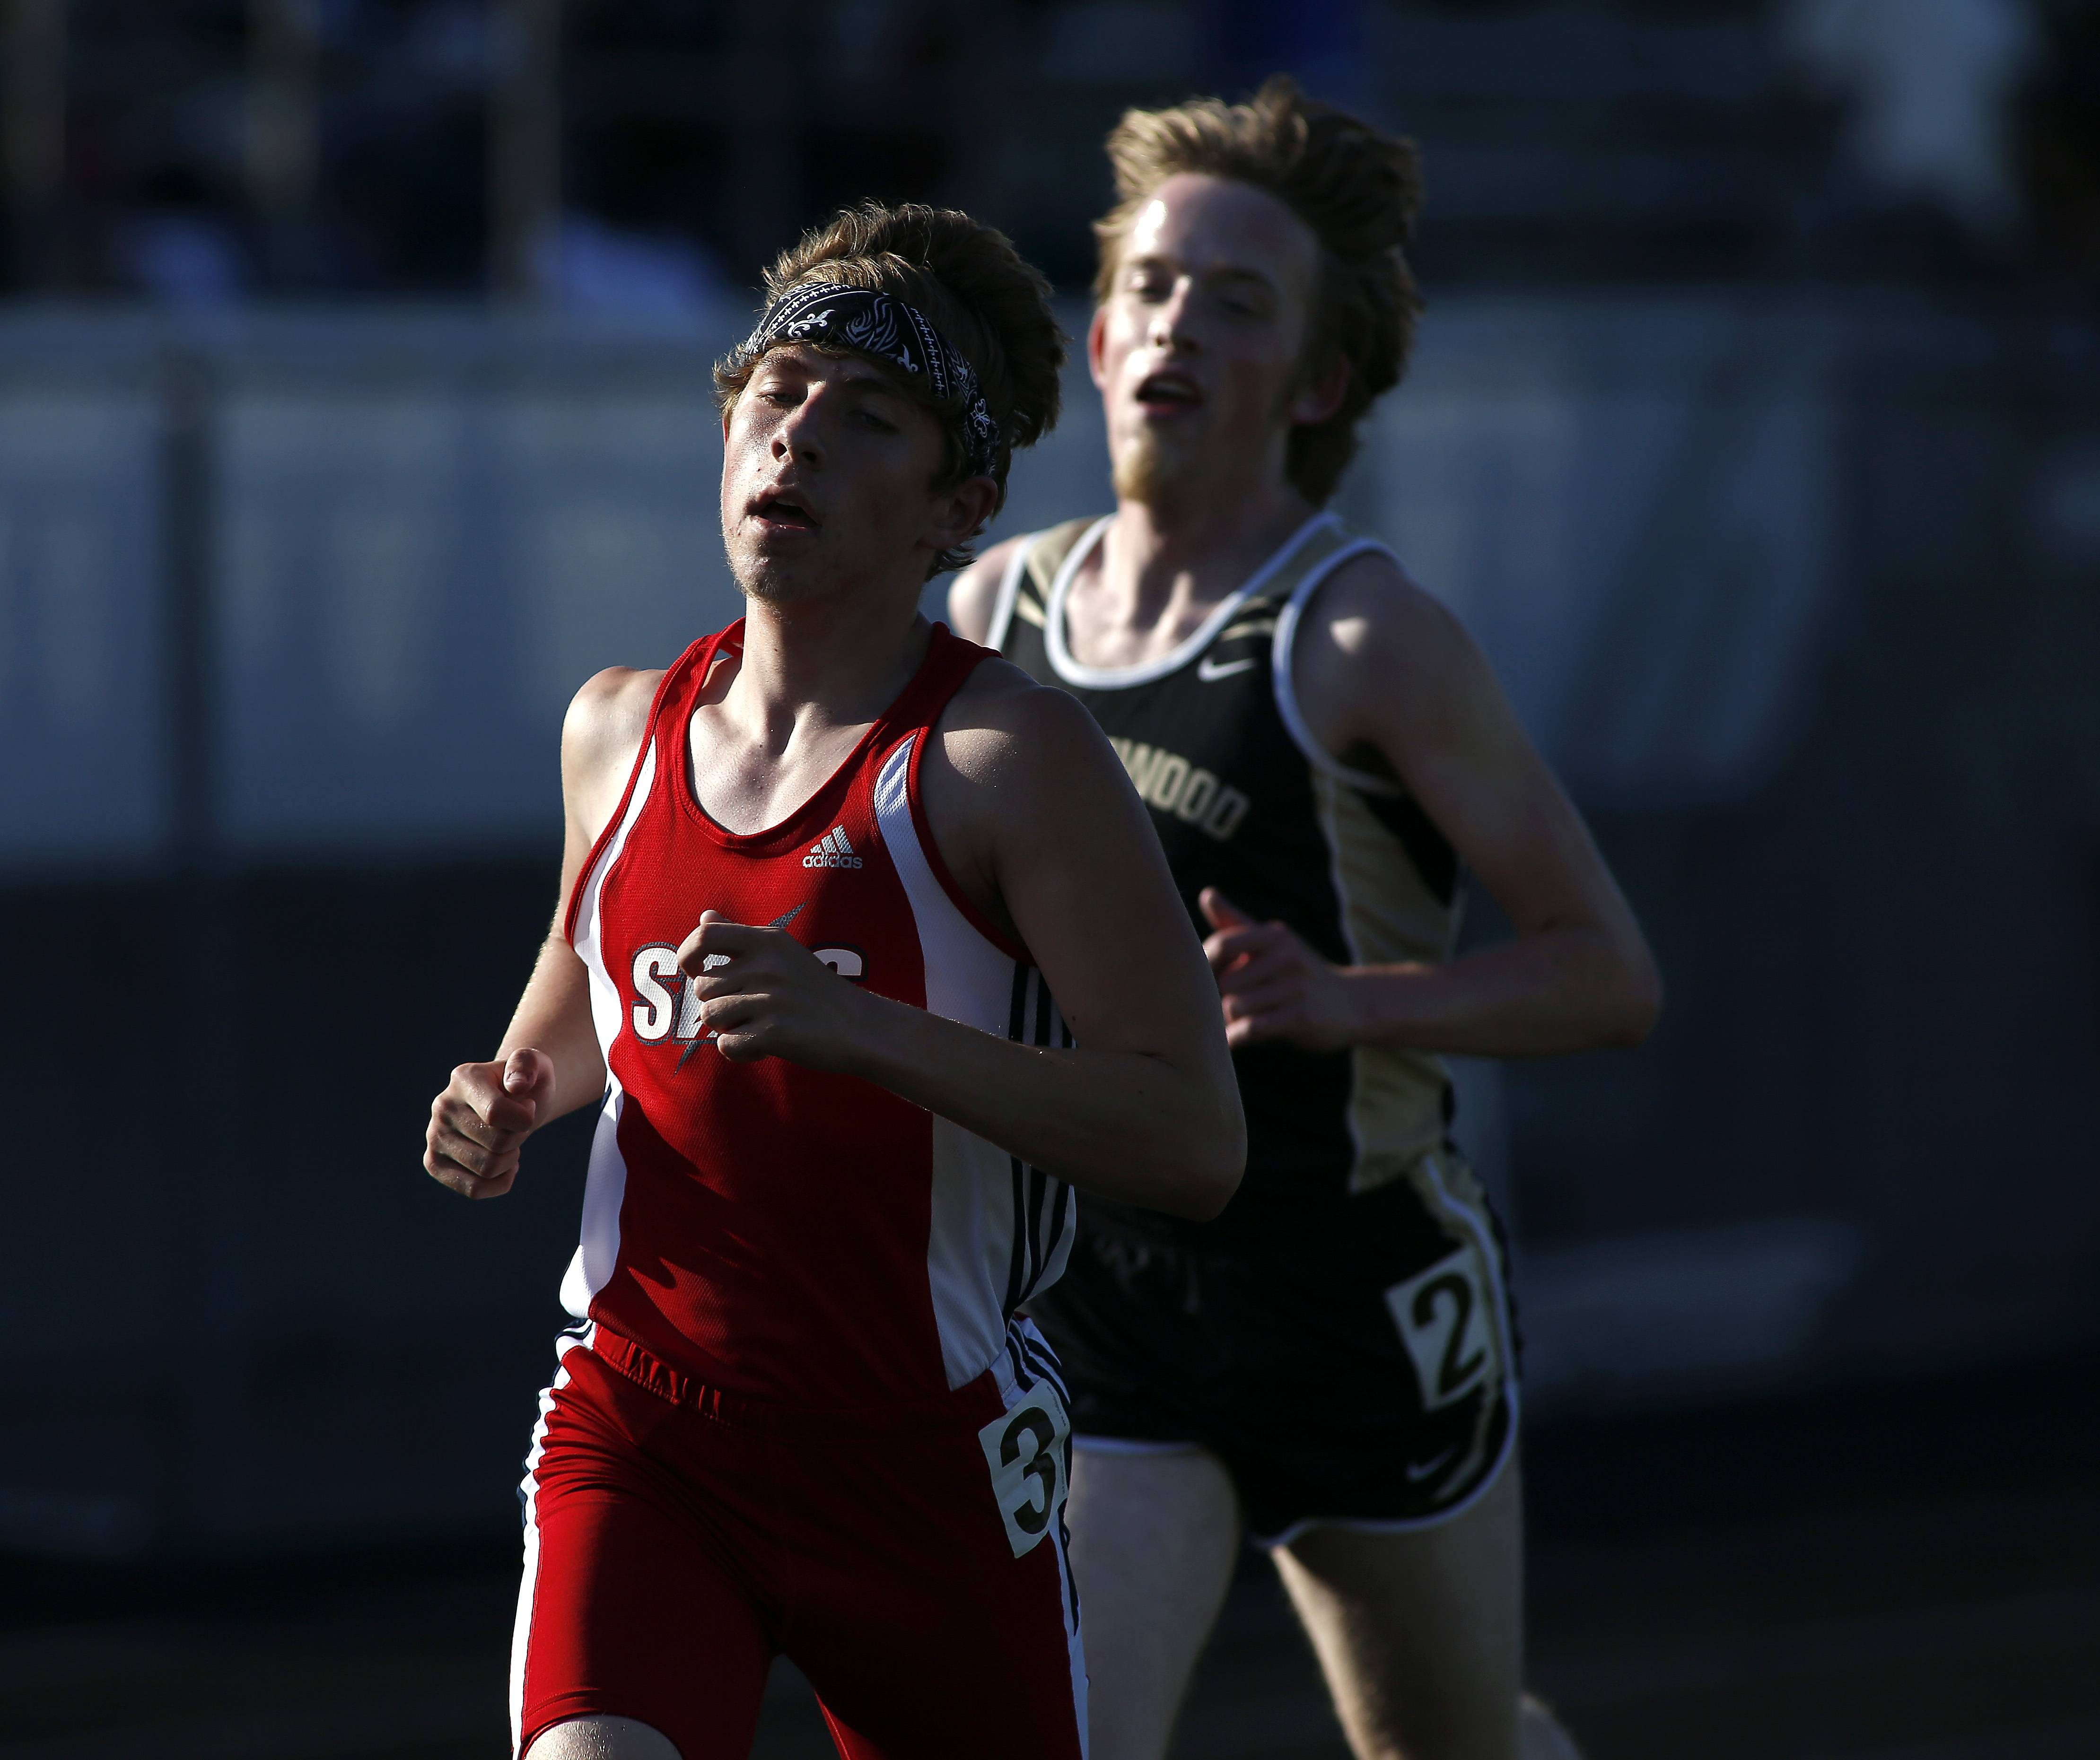 South Elgin's Matt Stover noses ahead of Streamwood's Alan Douglas in the 3,200 during the Class 3A Bartlett boys track sectional Friday at Memorial Field in Elgin.